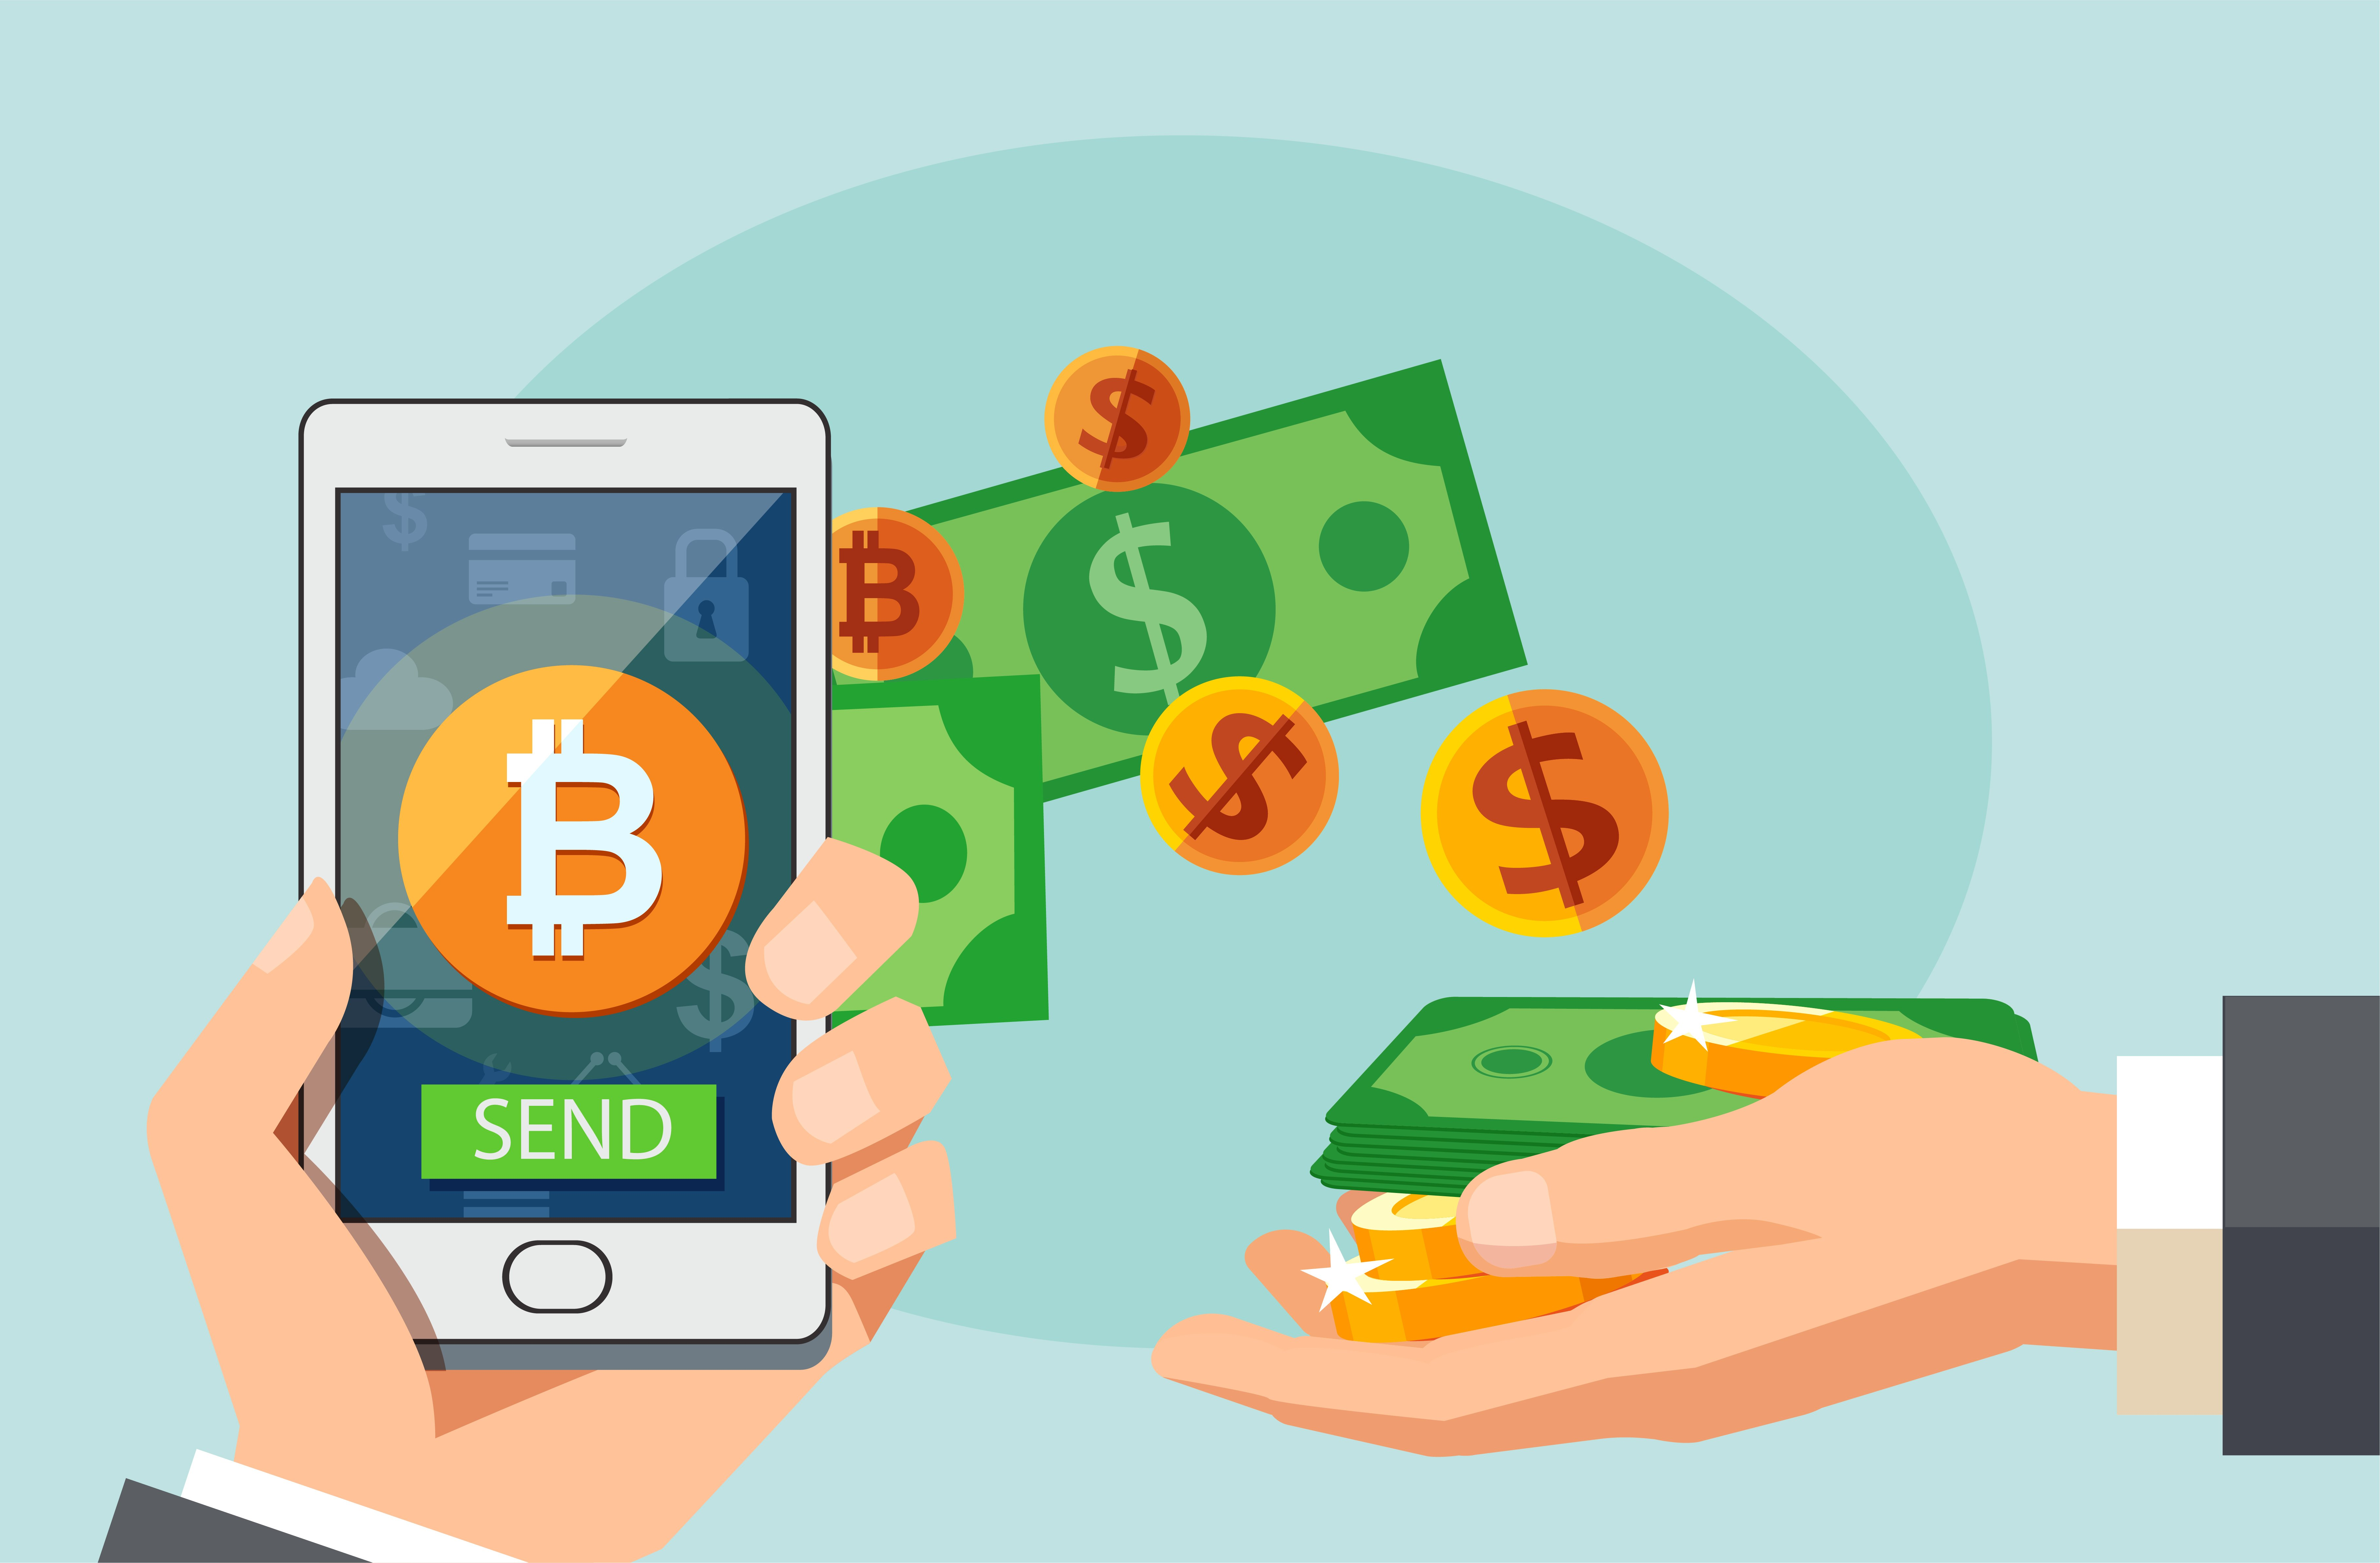 hand holding phone with dollars and bitcoin coming out of it